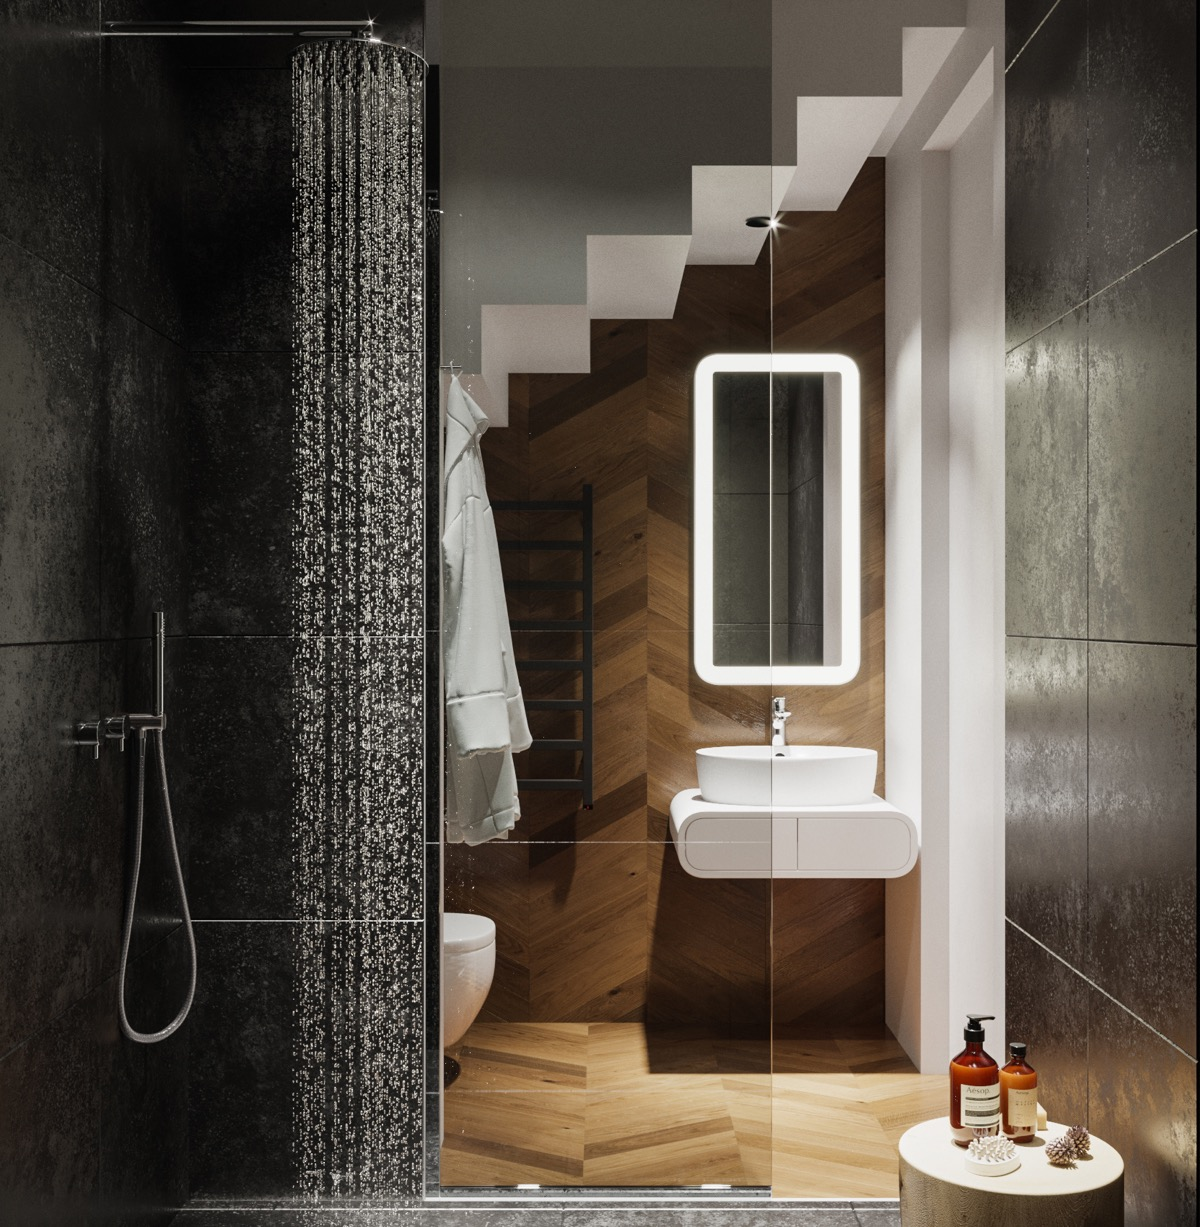 51 Modern Bathroom Design Ideas Plus Tips On How To Accessorize Yours